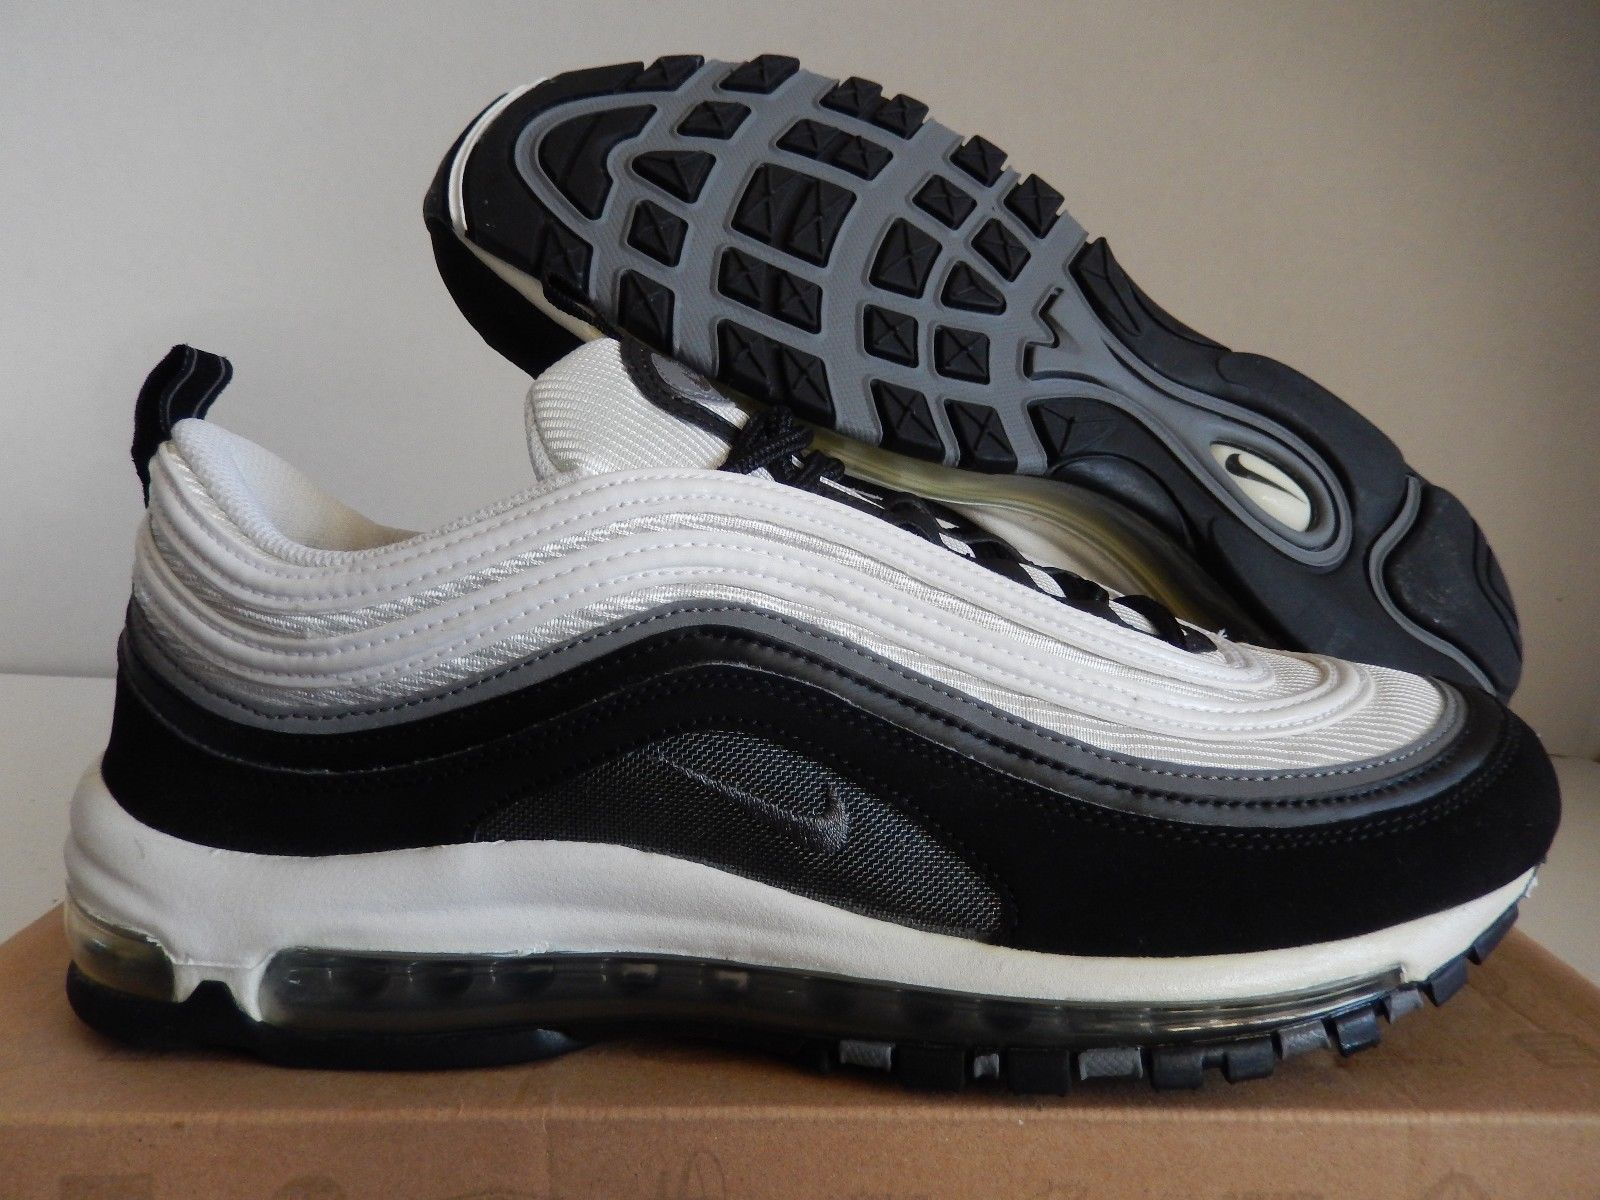 best cheap 7f4aa d0ee9 NIKE AIR MAX 97 BLACK-COOL GREY-WHITE SZ 11 RARE!!!  312641-005